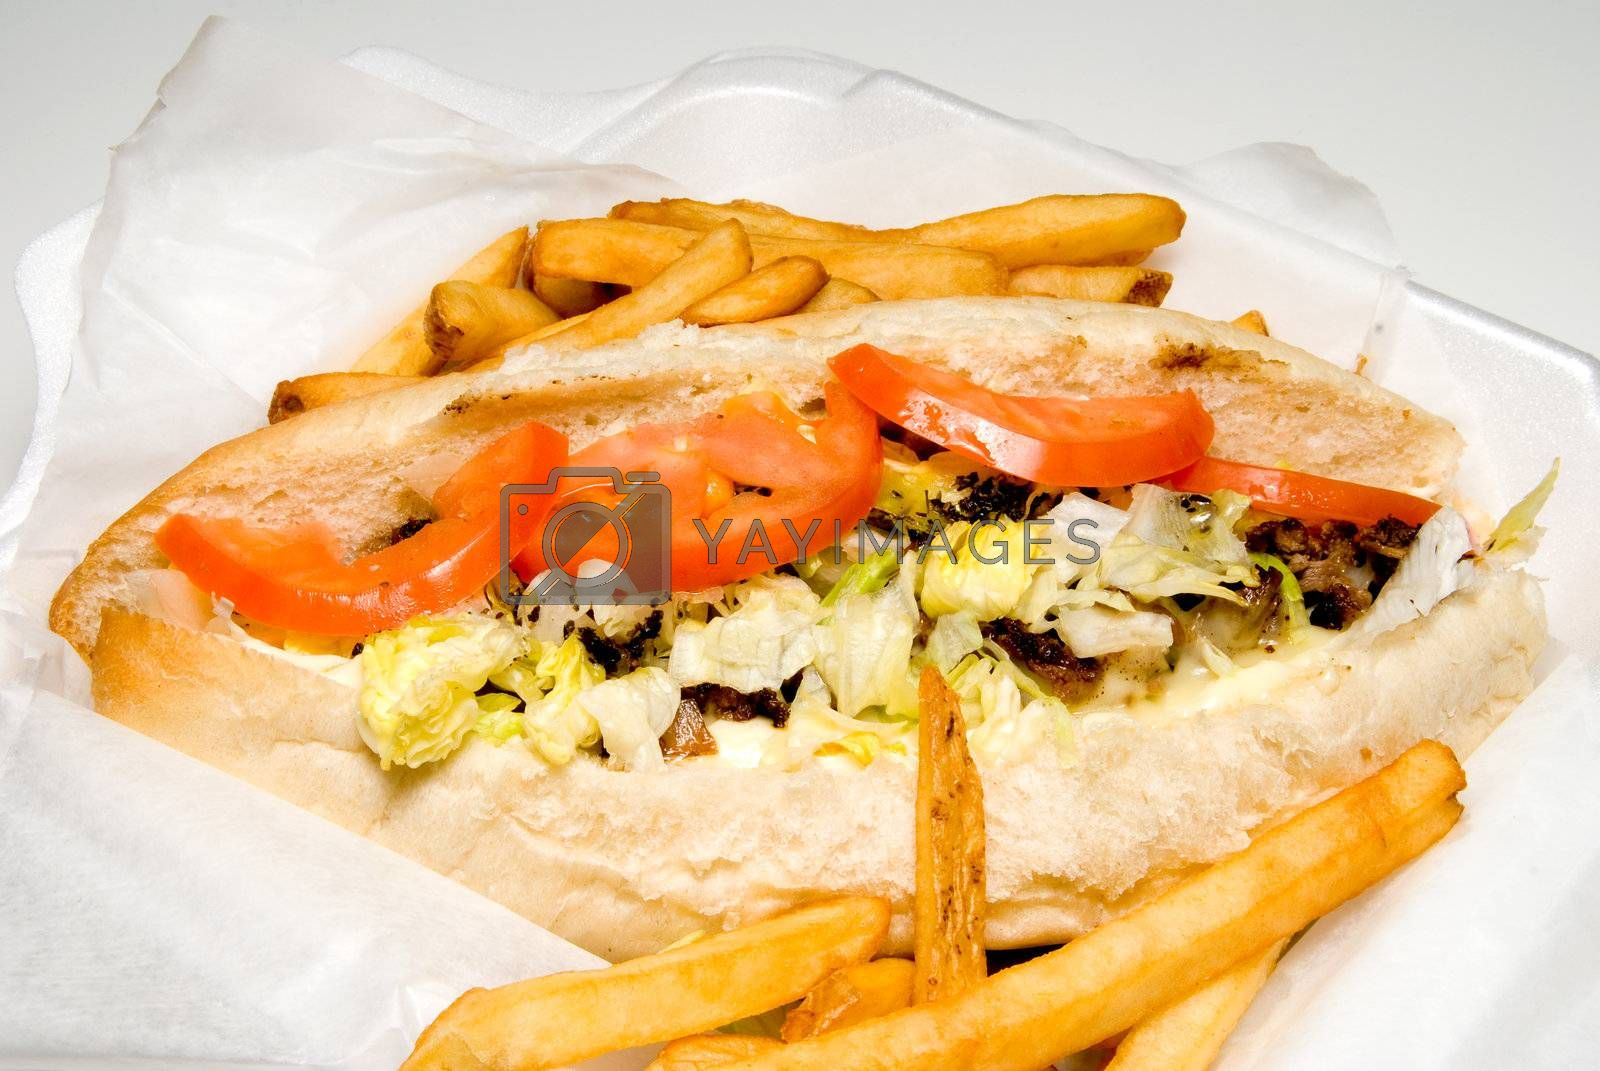 A Philly Cheesesteak and an order of French Fries